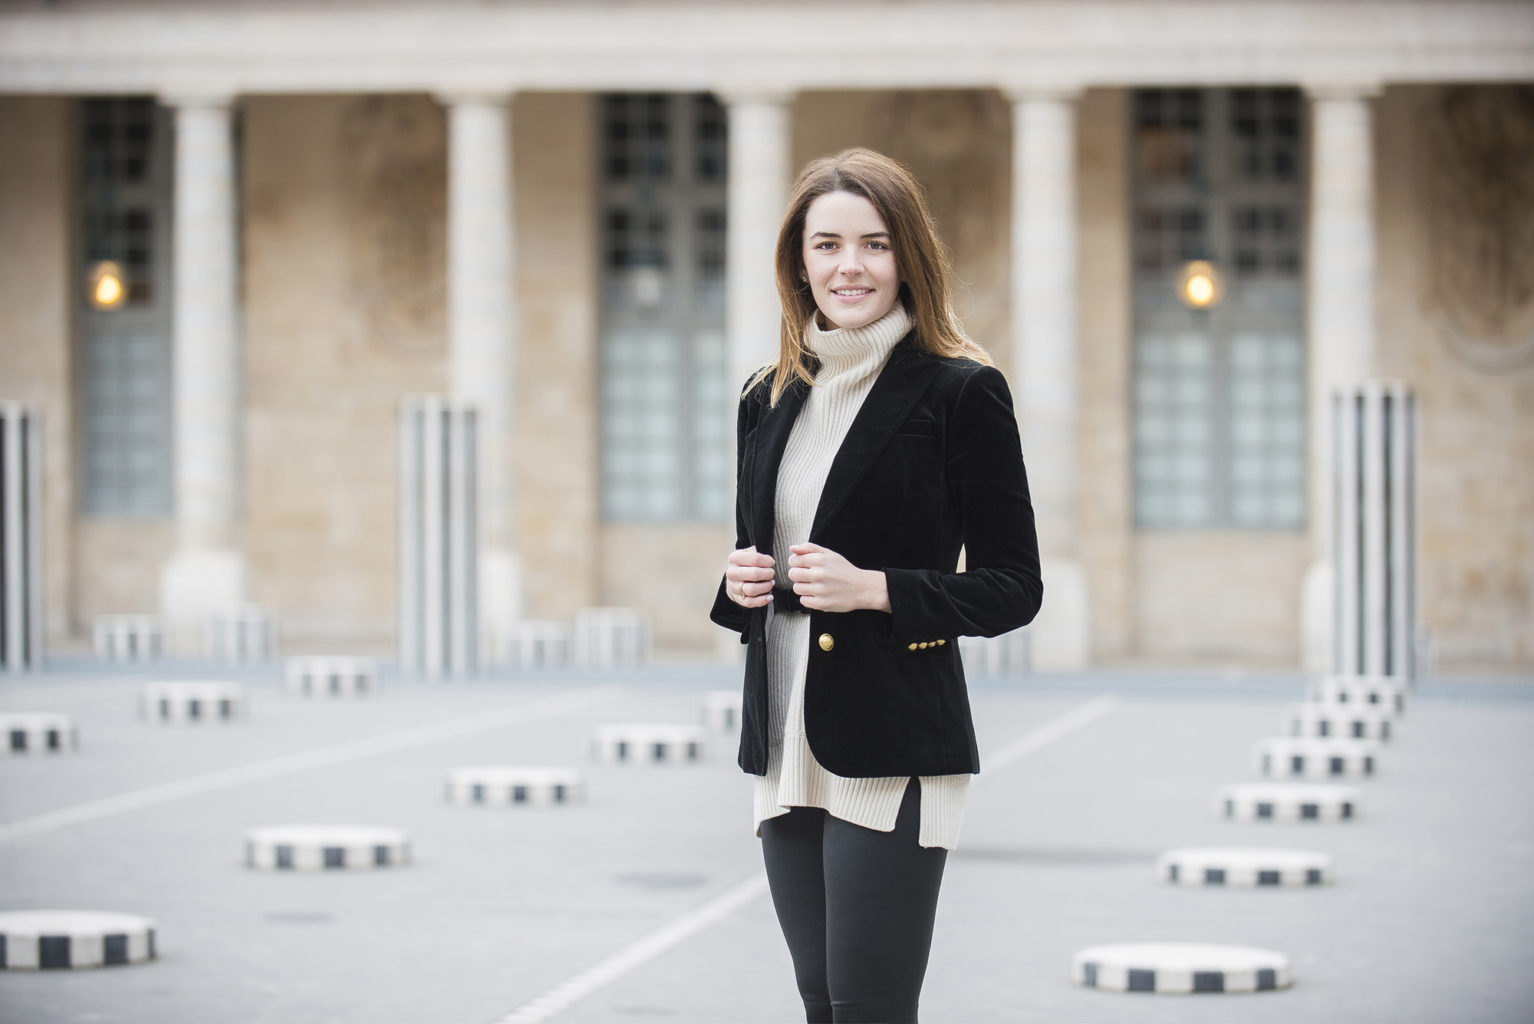 Portrait Session in Paris with Catherine Smith of Plan de Ville